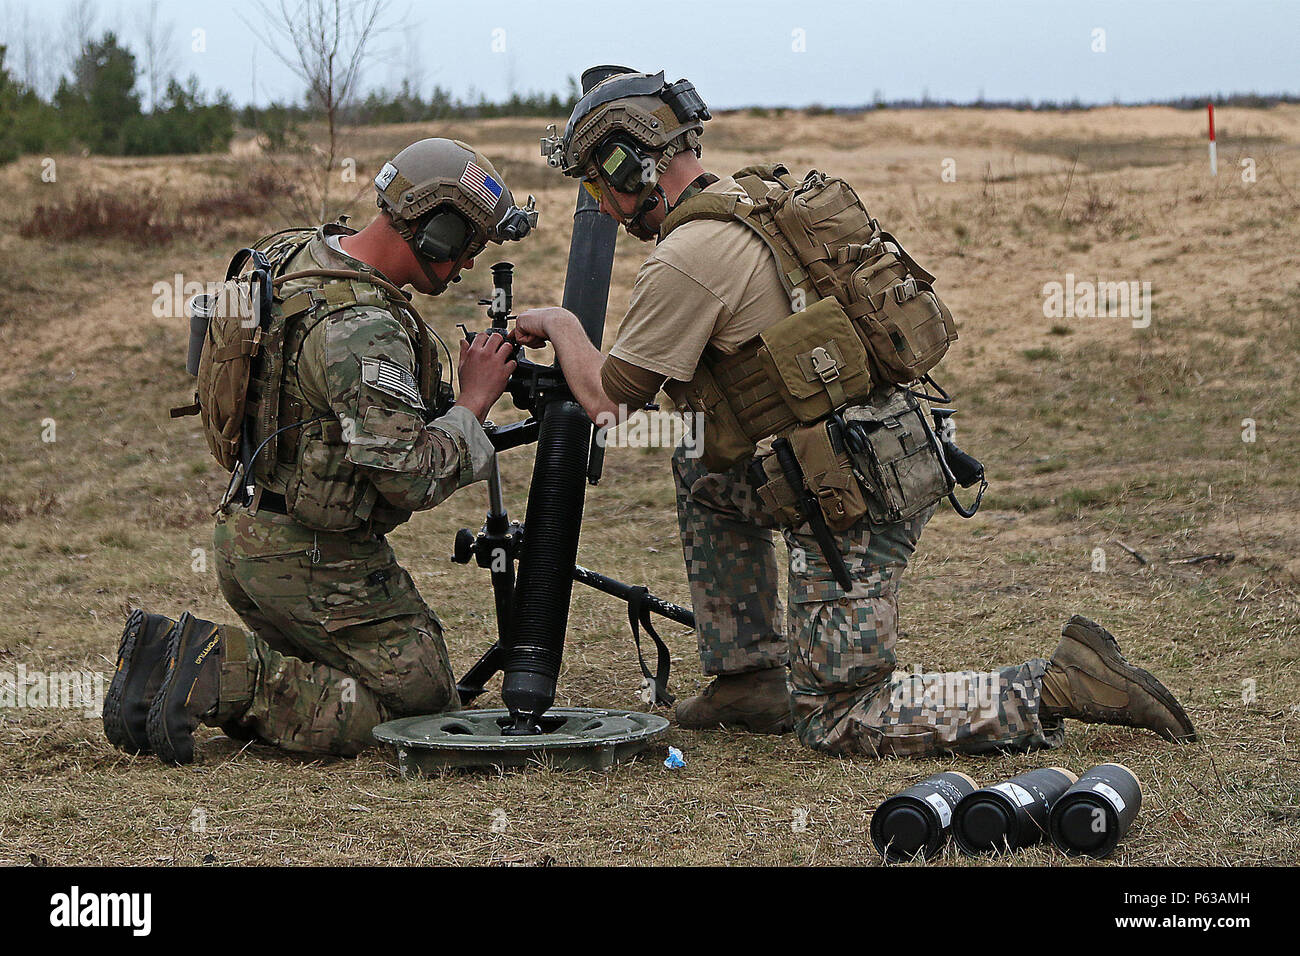 A Special Operations Command Forward Eastern Europe soldier shows a Latvian special forces soldier how to make adjustments before firing 81mm mortars during weapons familiarization training, April 13, at Adazi Military Base, Latvia. While in the area, SOC-FWD-EE soldiers have conducted weapons and medical training for various Army units supporting Operation Atlantic Resolve, a multinational demonstration of continued U.S. commitment to the collective security of North Atlantic Treaty Organization allies.(U.S. Army photo by Sgt. Paige Behringer, 10th Press Camp Headquarters) - Stock Image